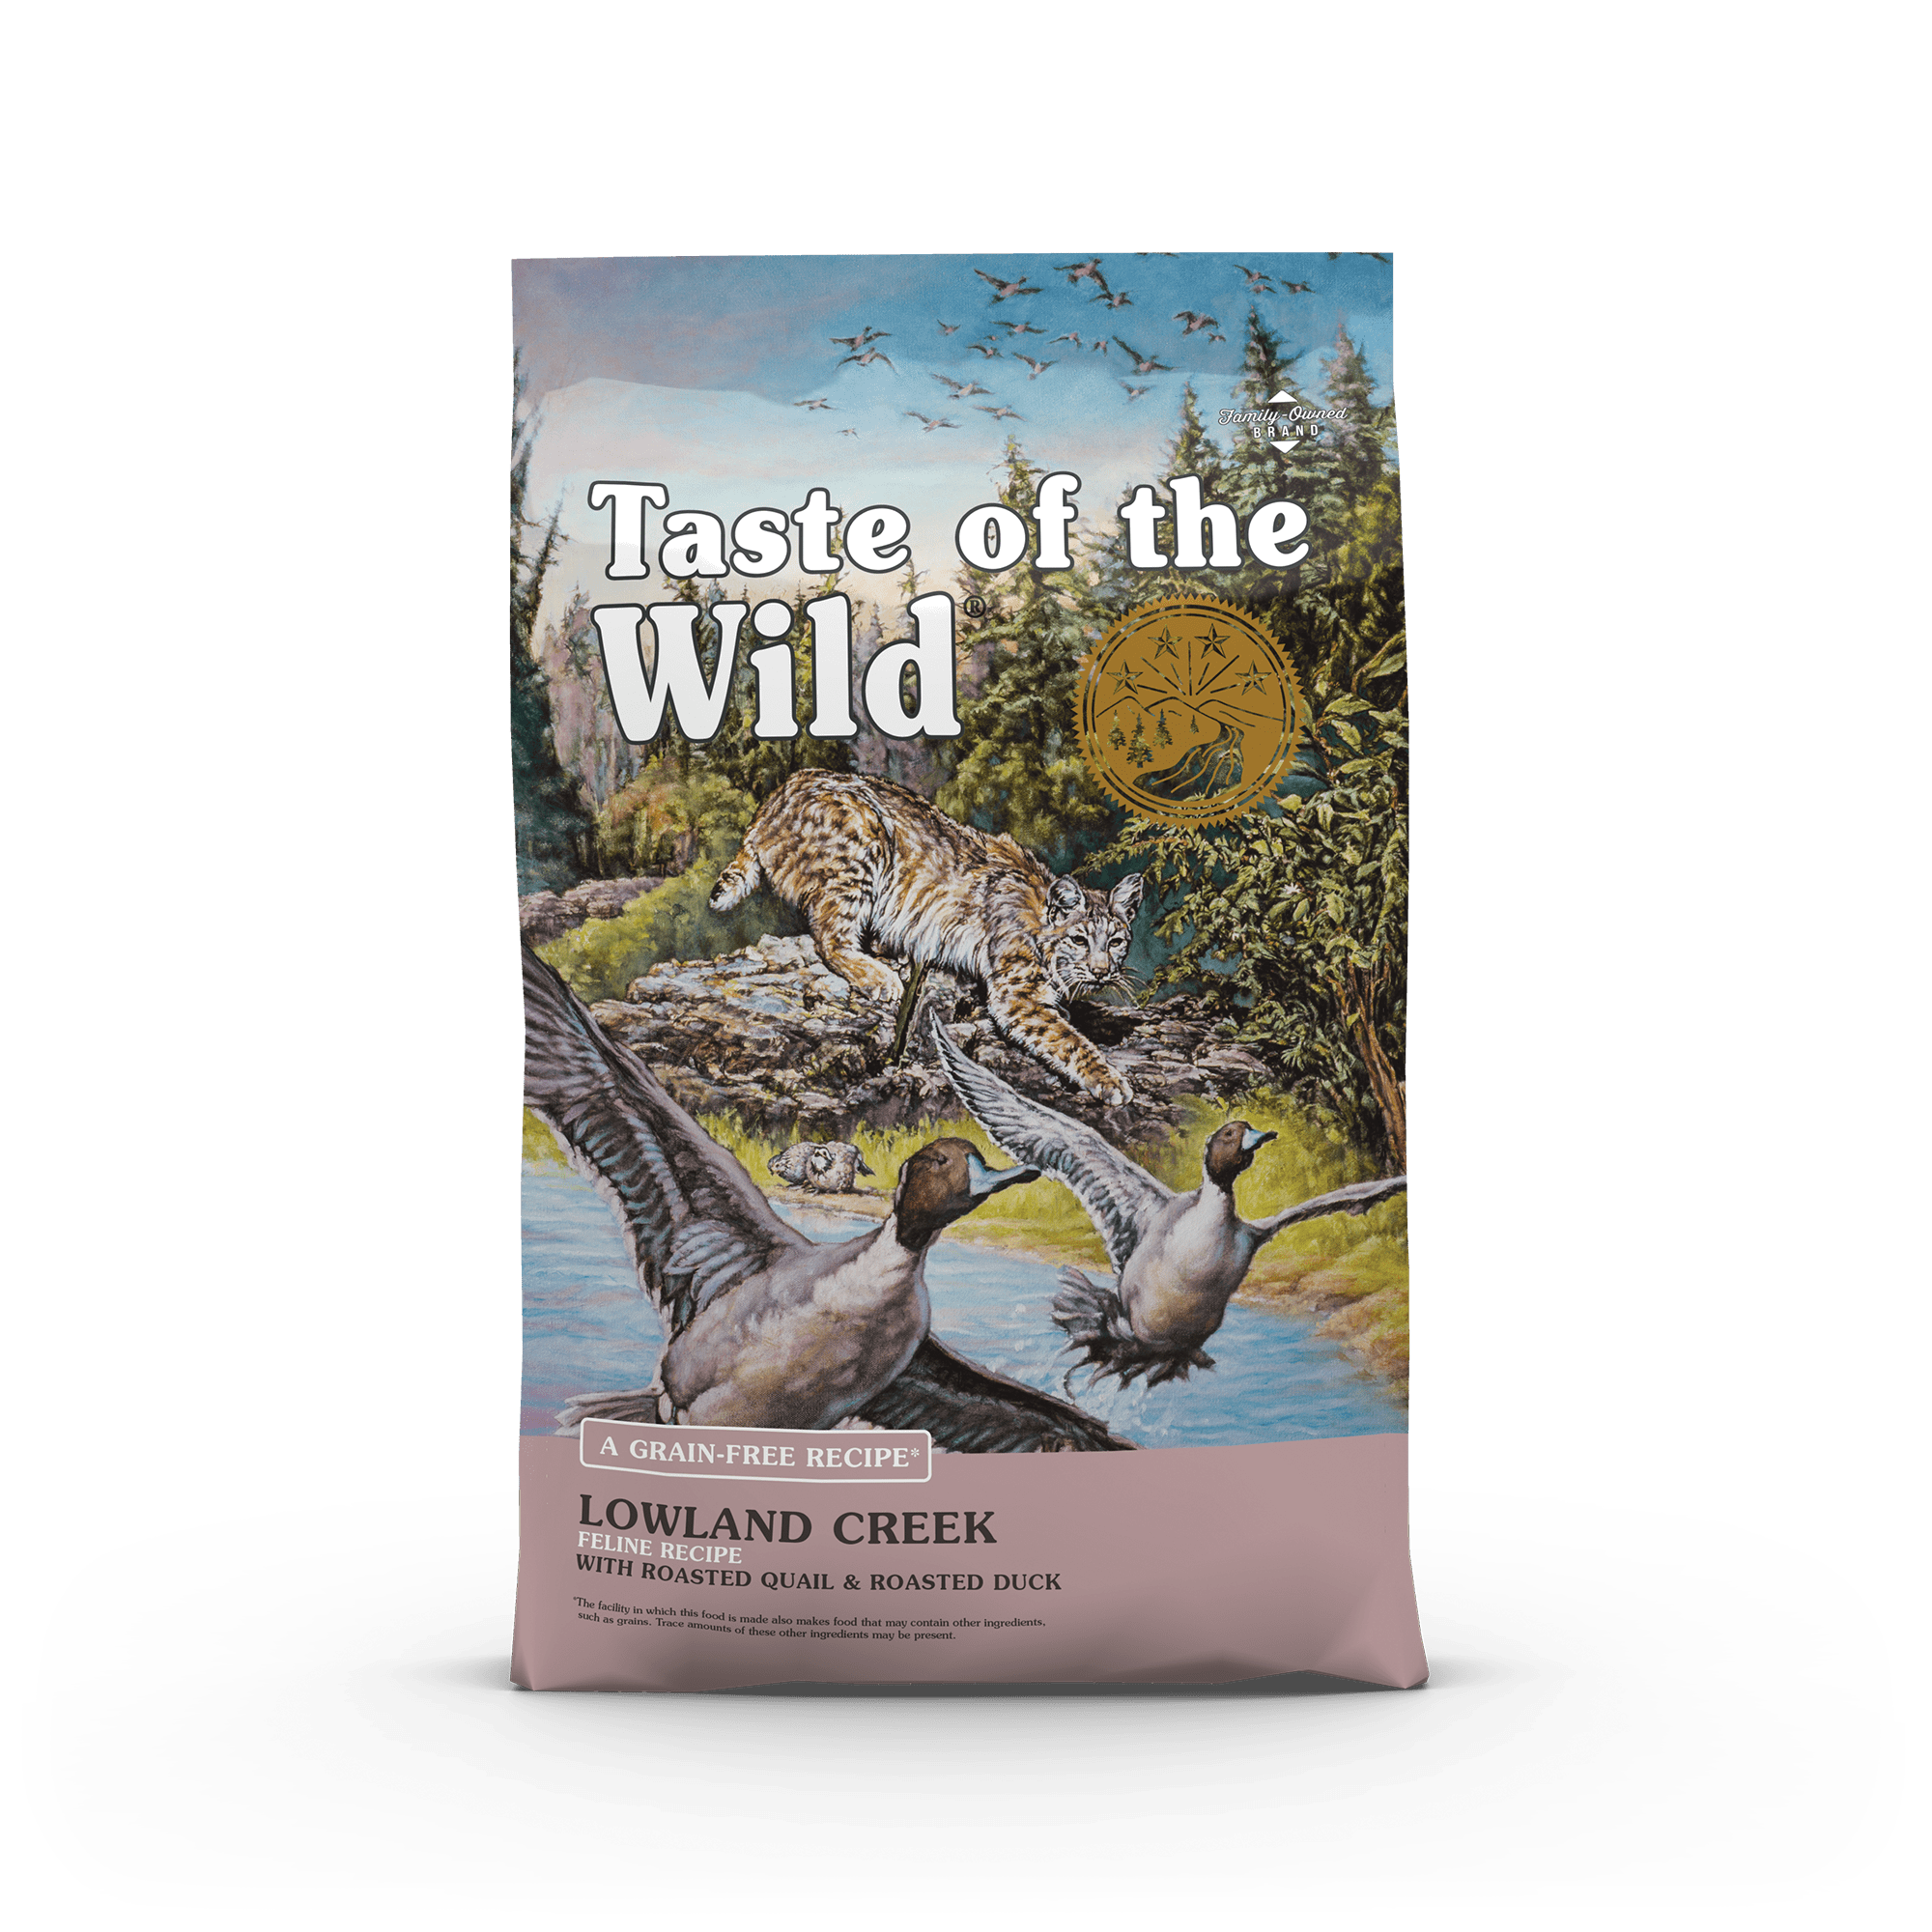 Lowland Creek Feline Recipe With Roasted Quail Roasted Duck Taste Of The Wild